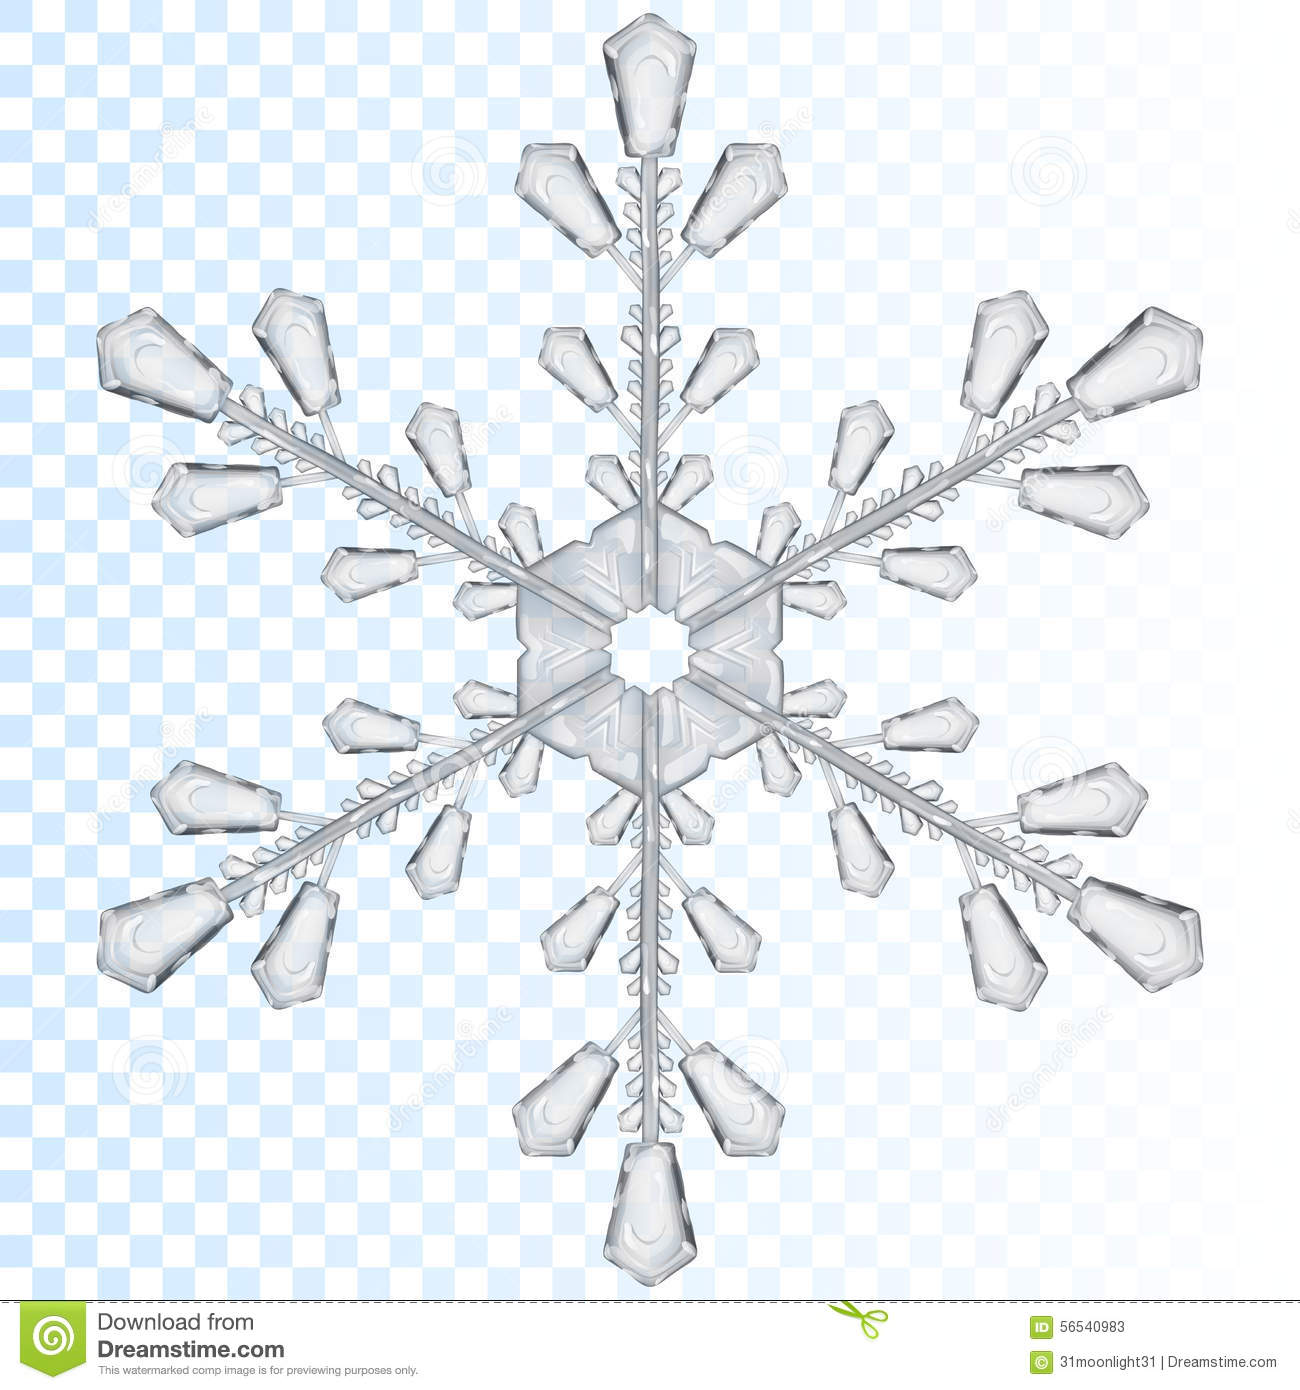 Snow Flake Images Stock Photos amp Vectors  Shutterstock